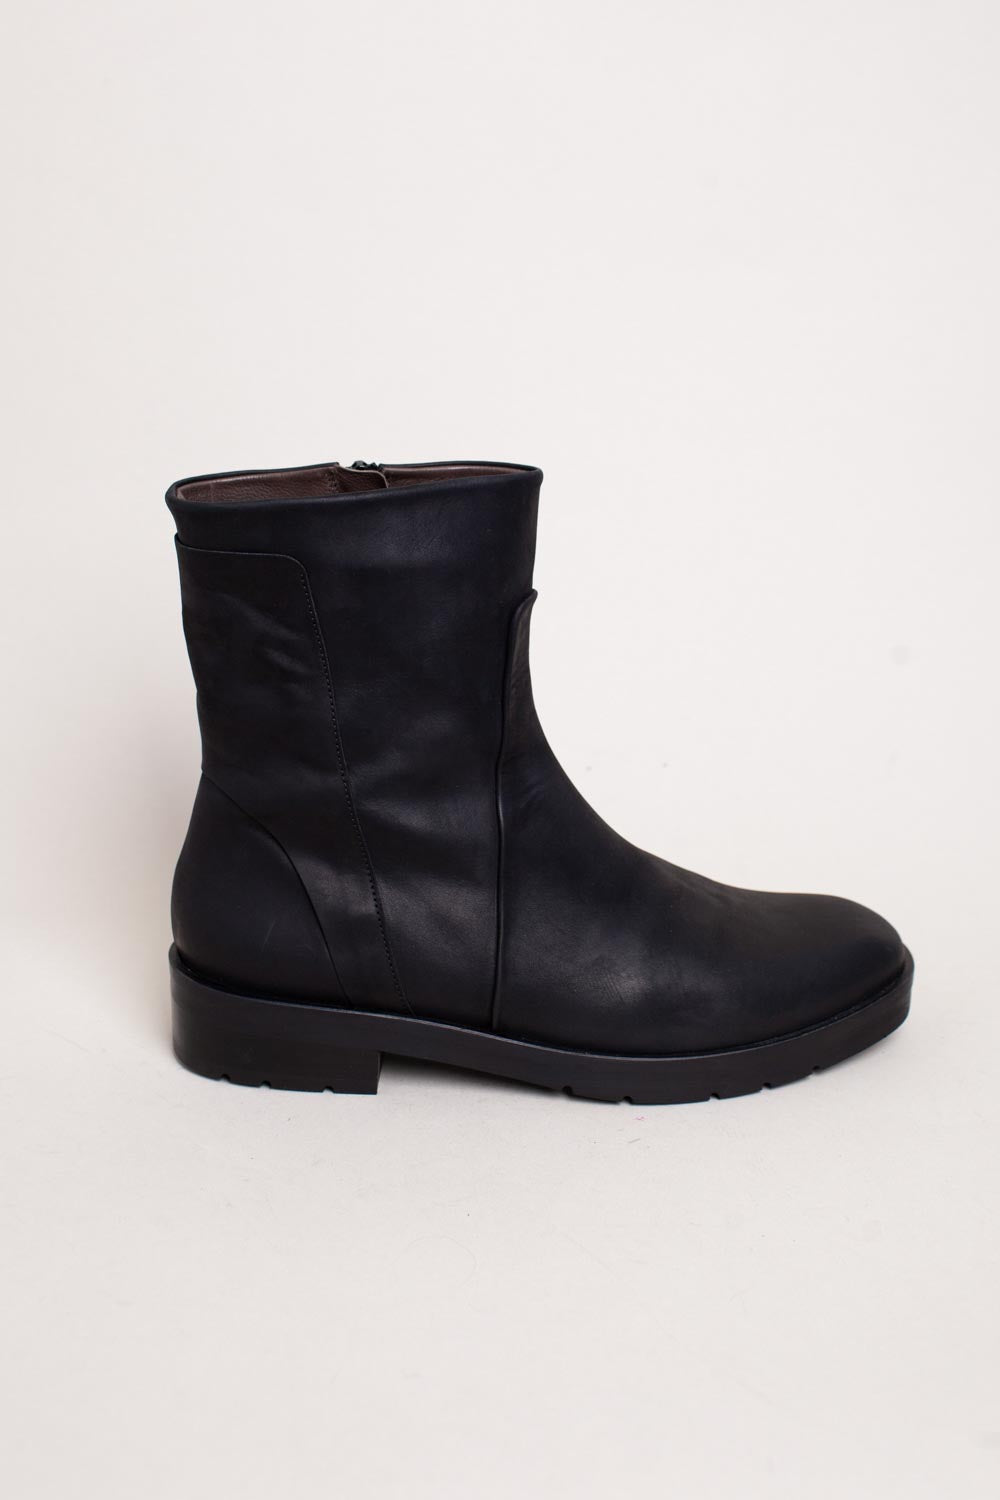 Coclico Doly Boot in Talco Black - Vert & Vogue